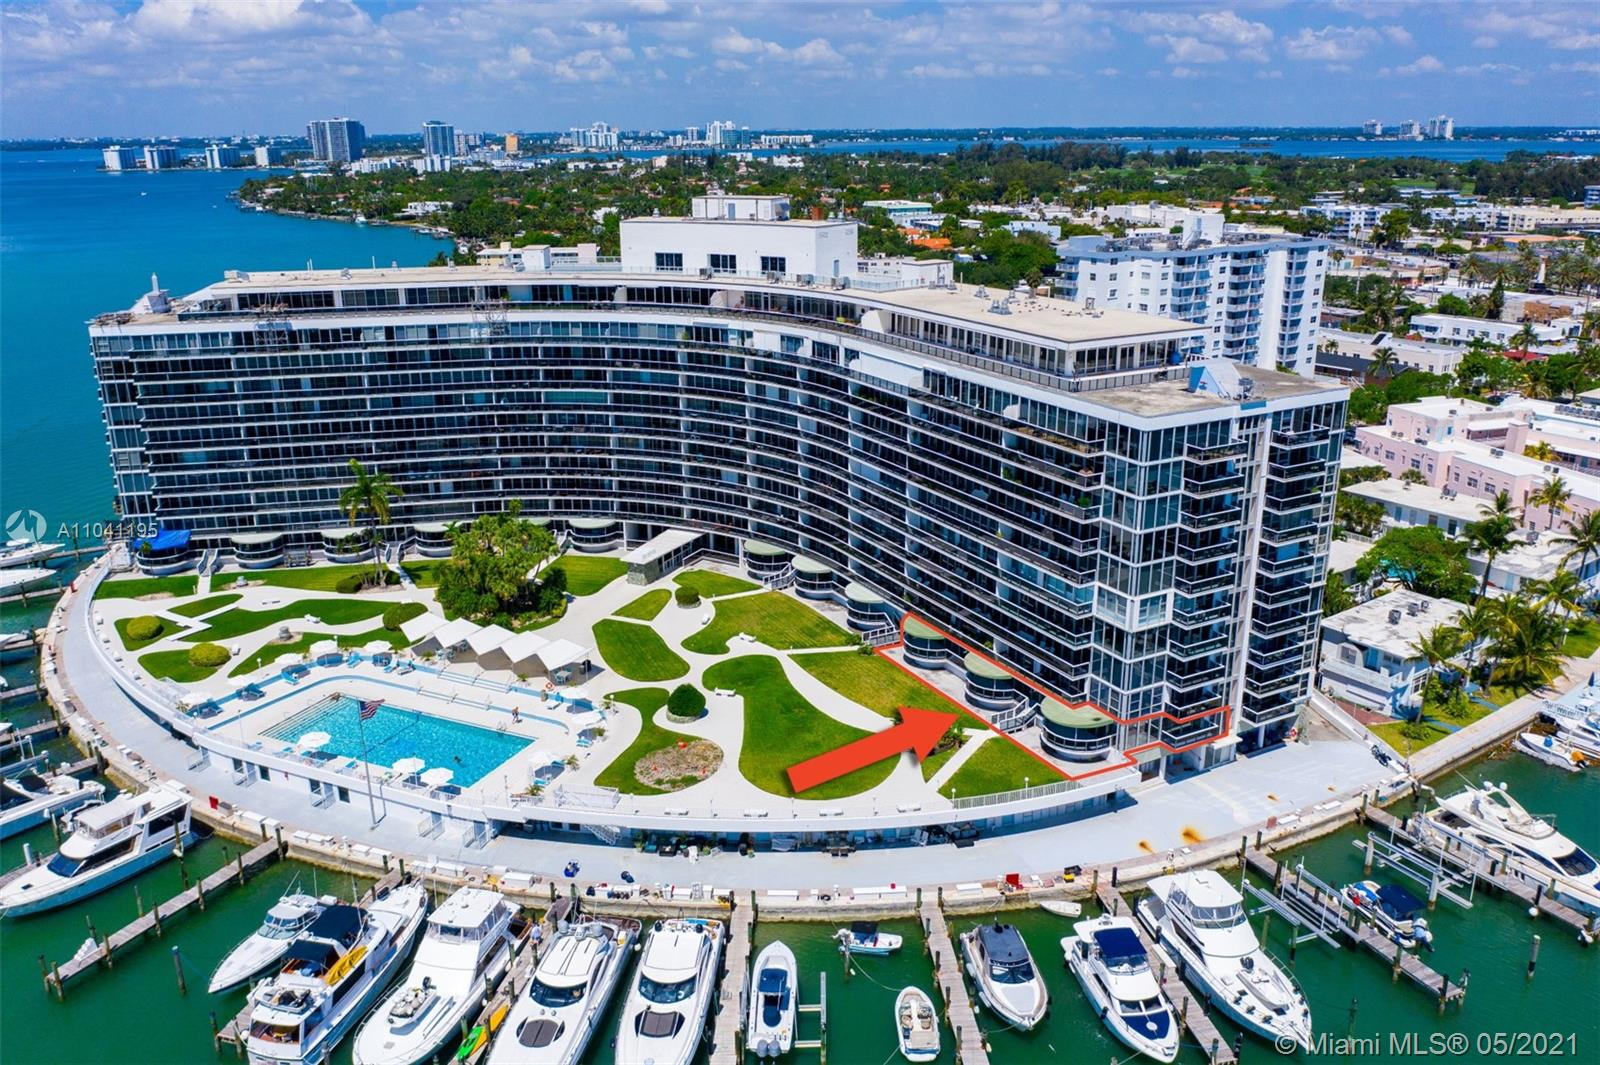 A perfect opportunity to remodel or renovate this 3,300 square foot unit (as per owner) and make it your very own. This corner unit at the King Cole Condominium in Normandy Isles consists of two combined units with 3 bedrooms and 3 bathrooms and features floor to ceiling windows, 3 large ground floor terraces with unobstructed views to the Intracoastal Waterway, Biscayne Bay with sunrise and sunset views. It includes 2 assigned parking spaces and first floor step-out access to the beautiful grounds, the pool area and the boat slips. Perfectly located, just minutes to fine dining, shops, entertainment, and the beaches.